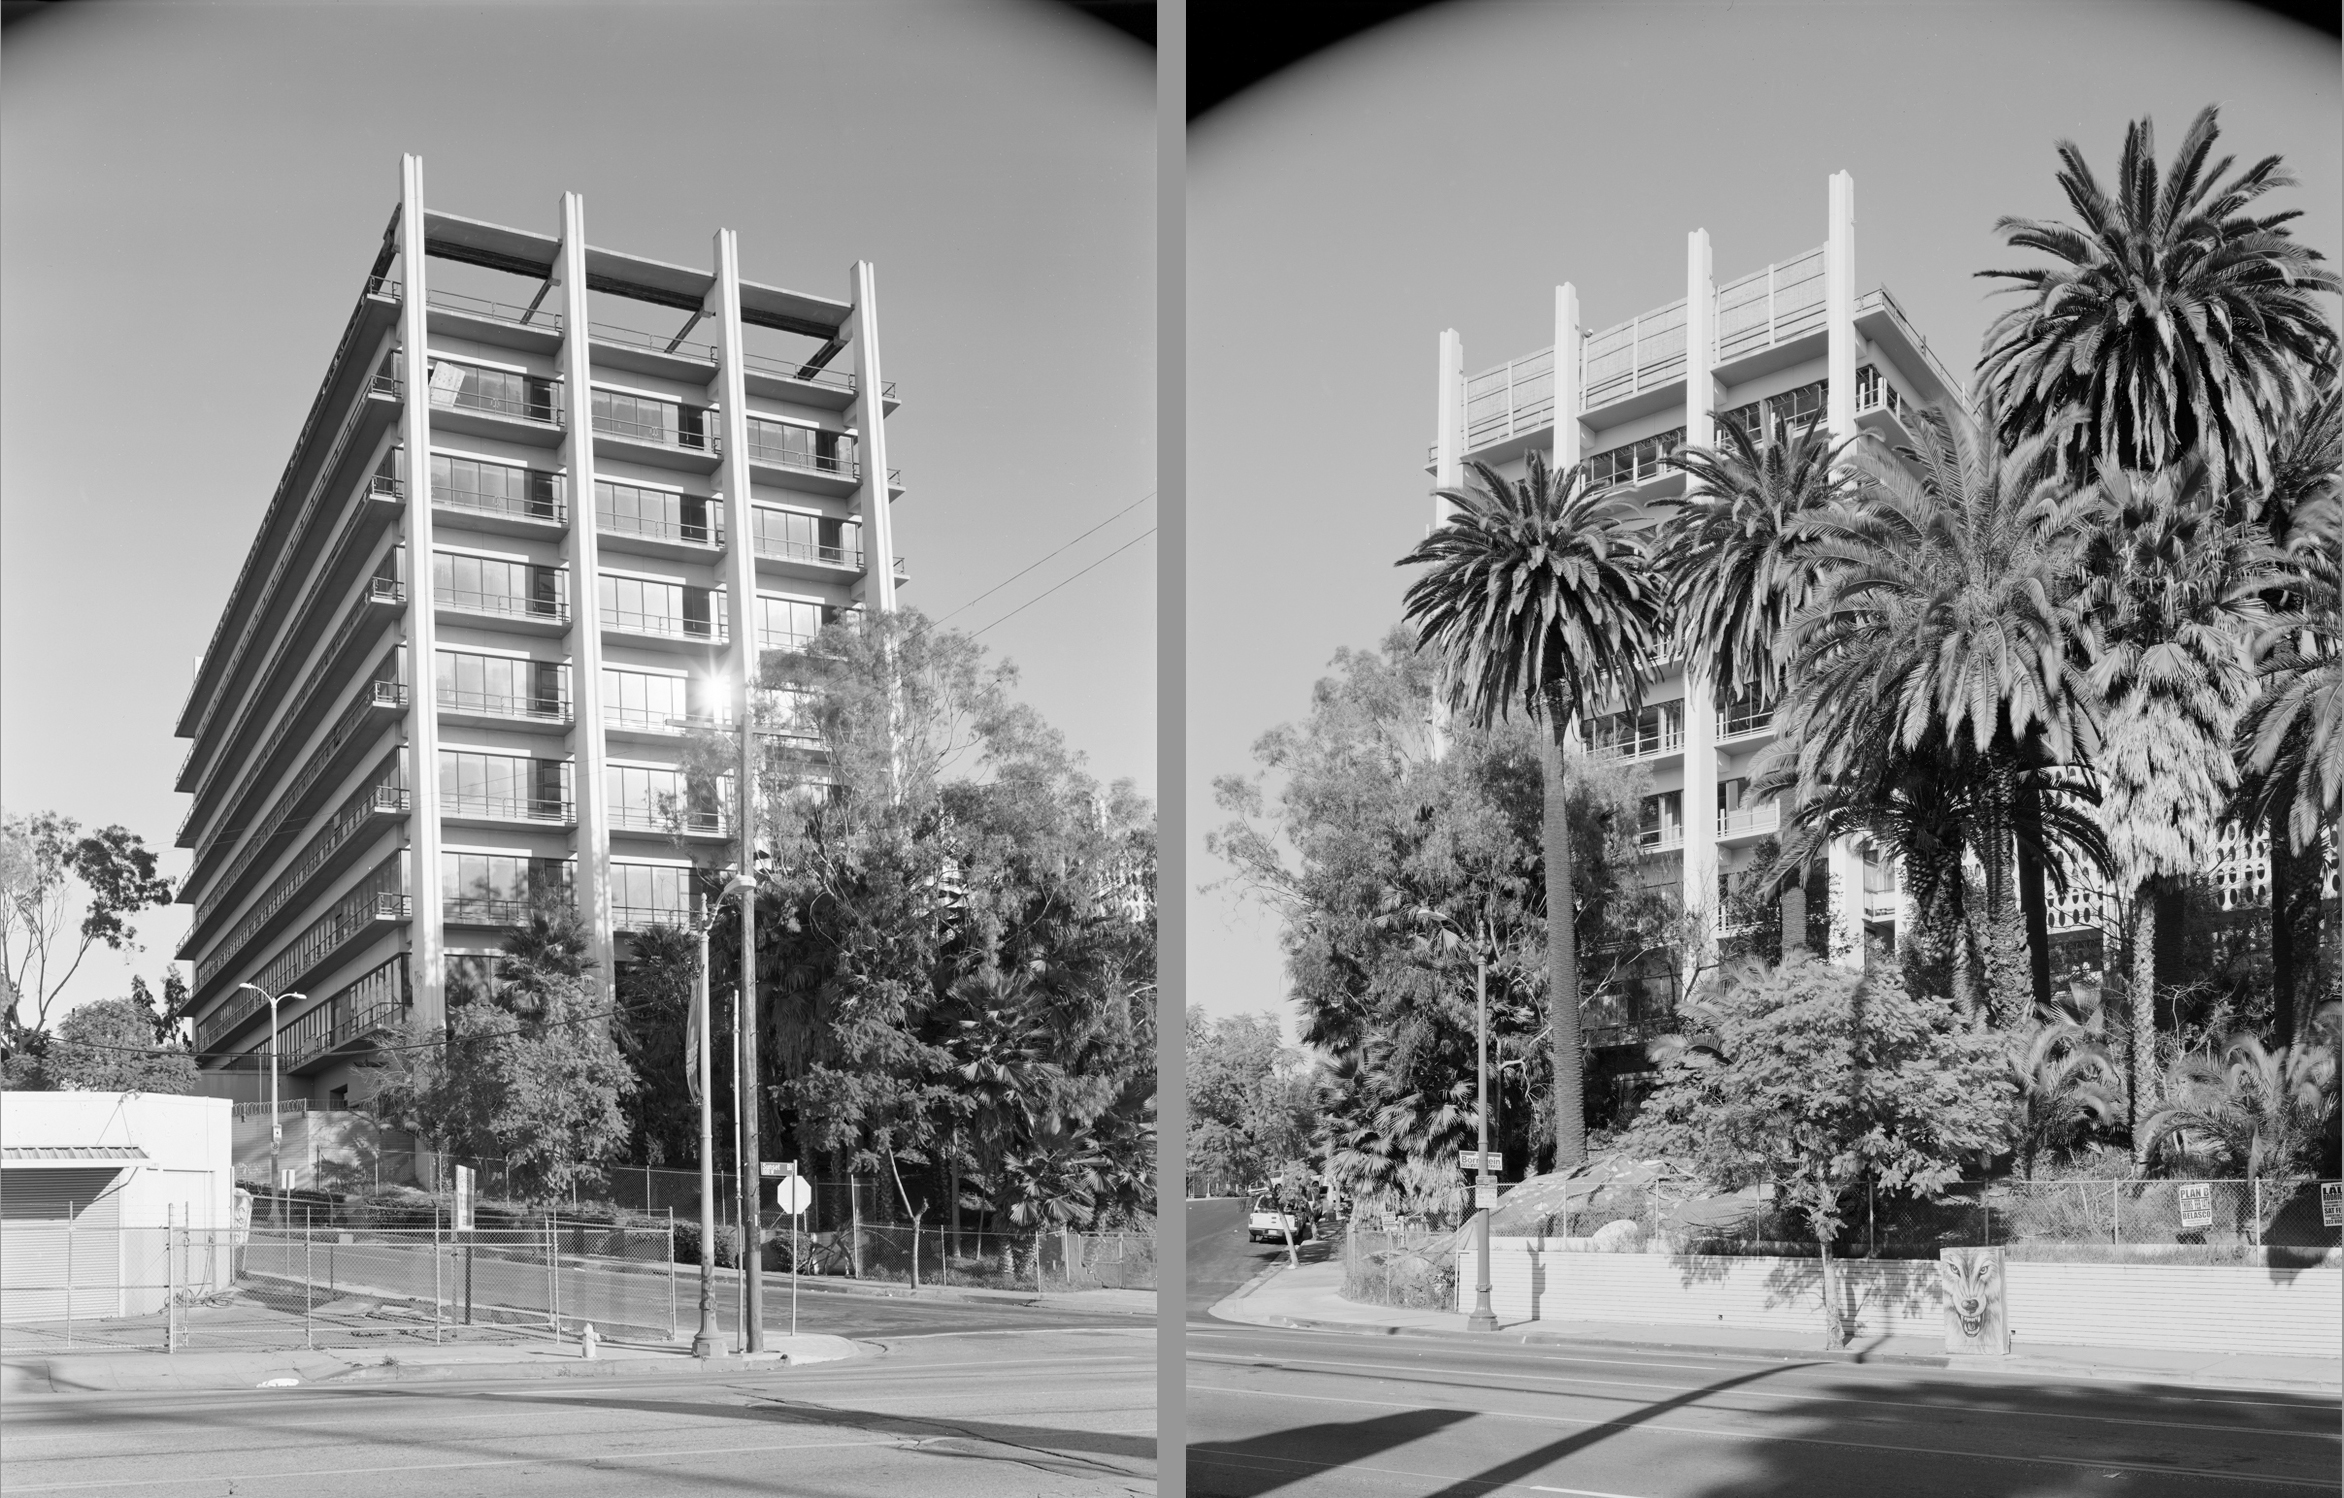 Sunset Blvd, Echo Park, L.A. (Diptych)